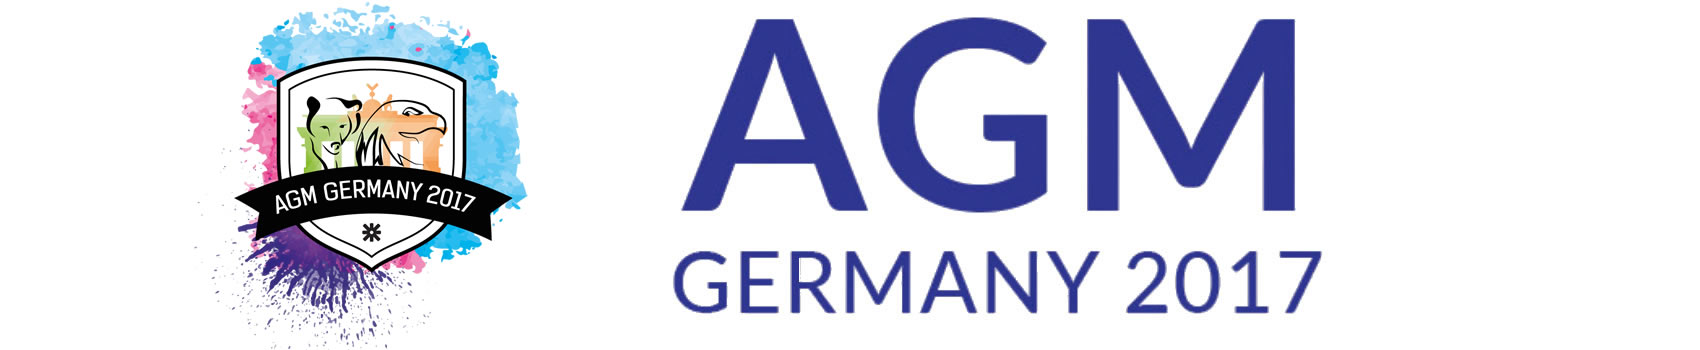 AGM - Germany